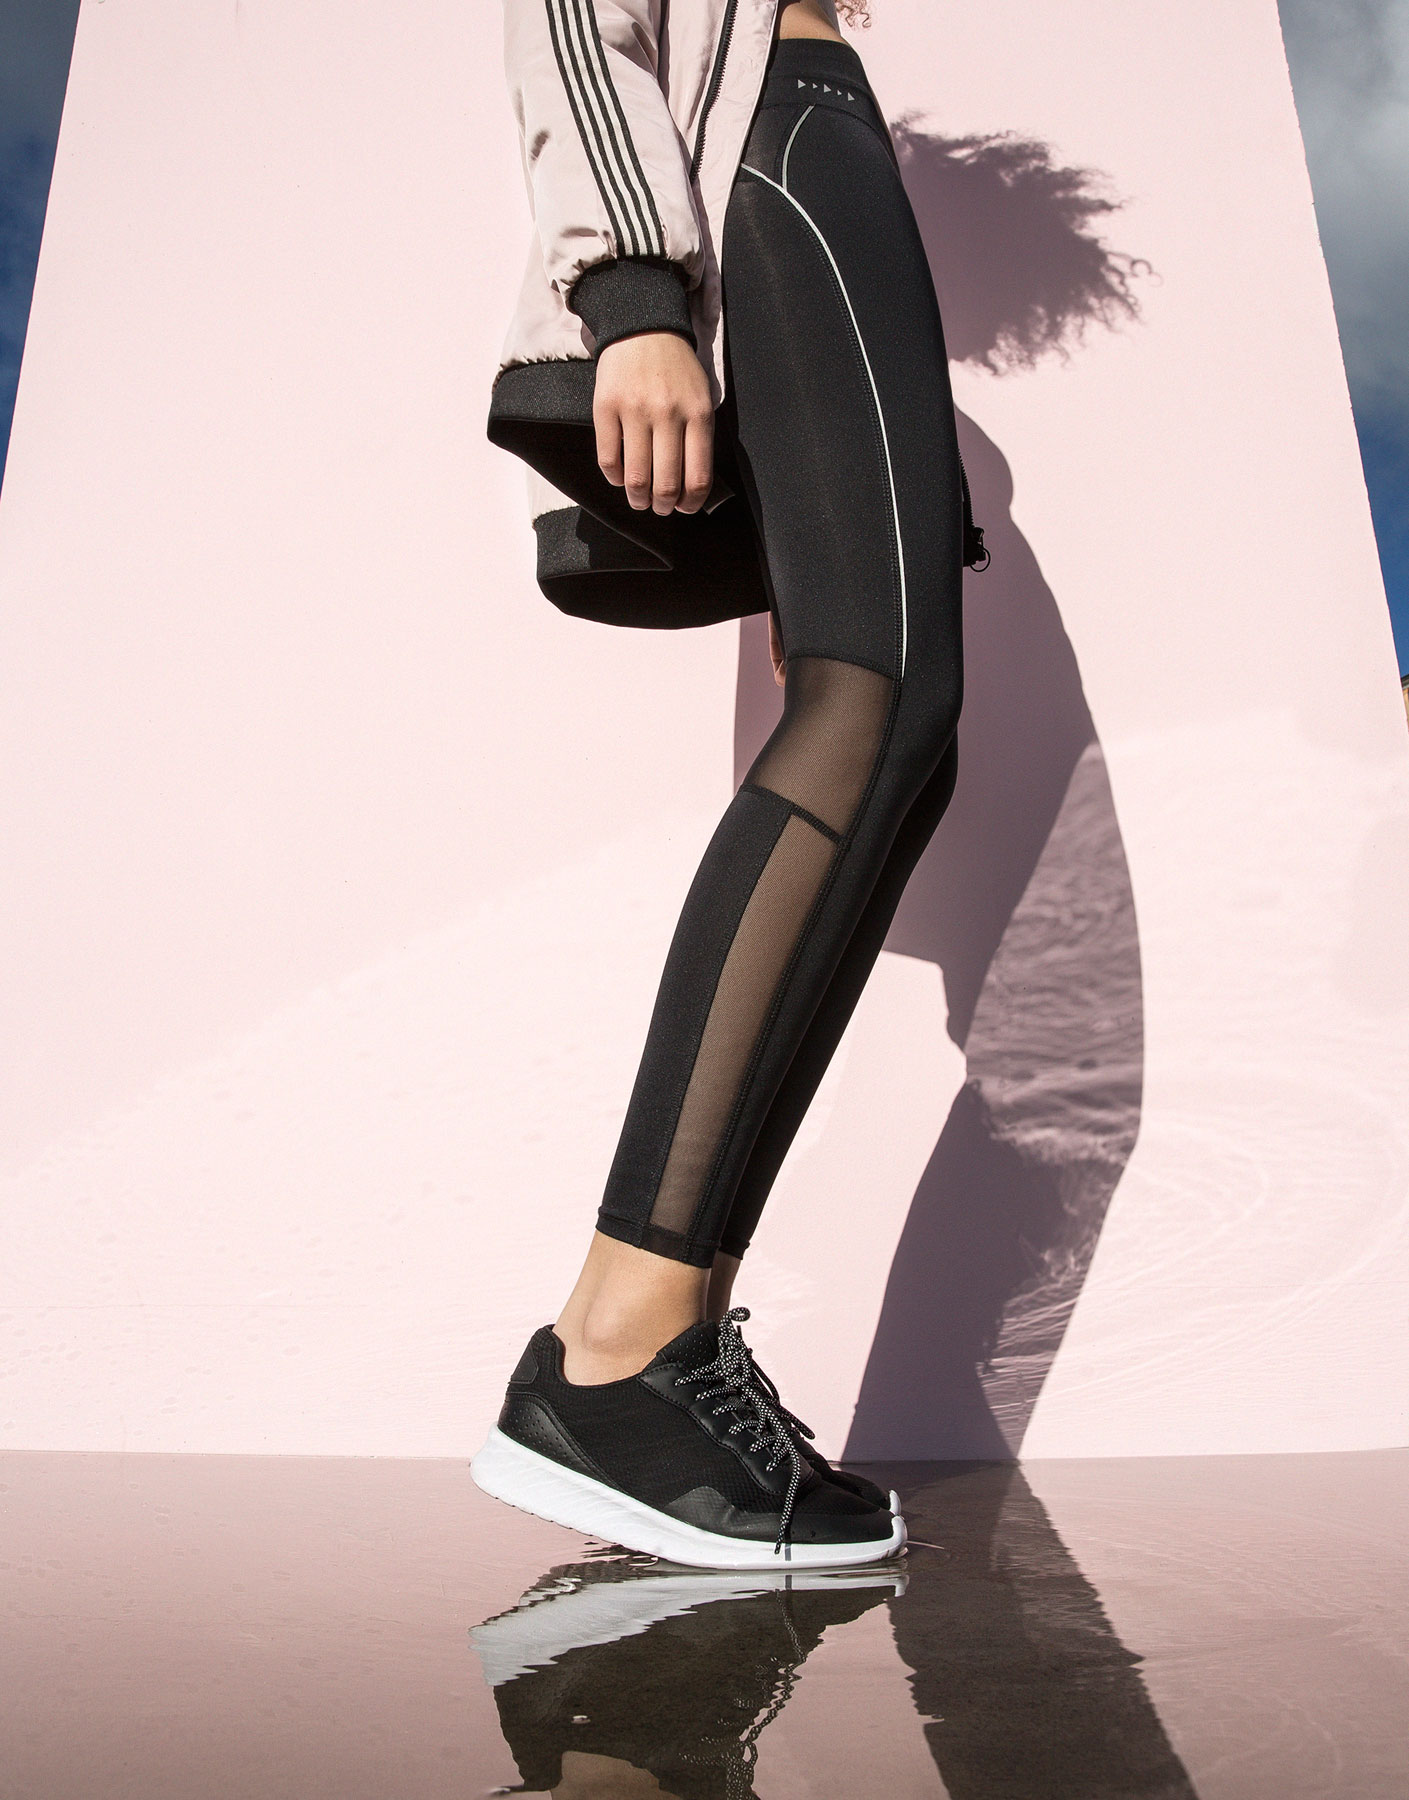 Long leggings for jogging